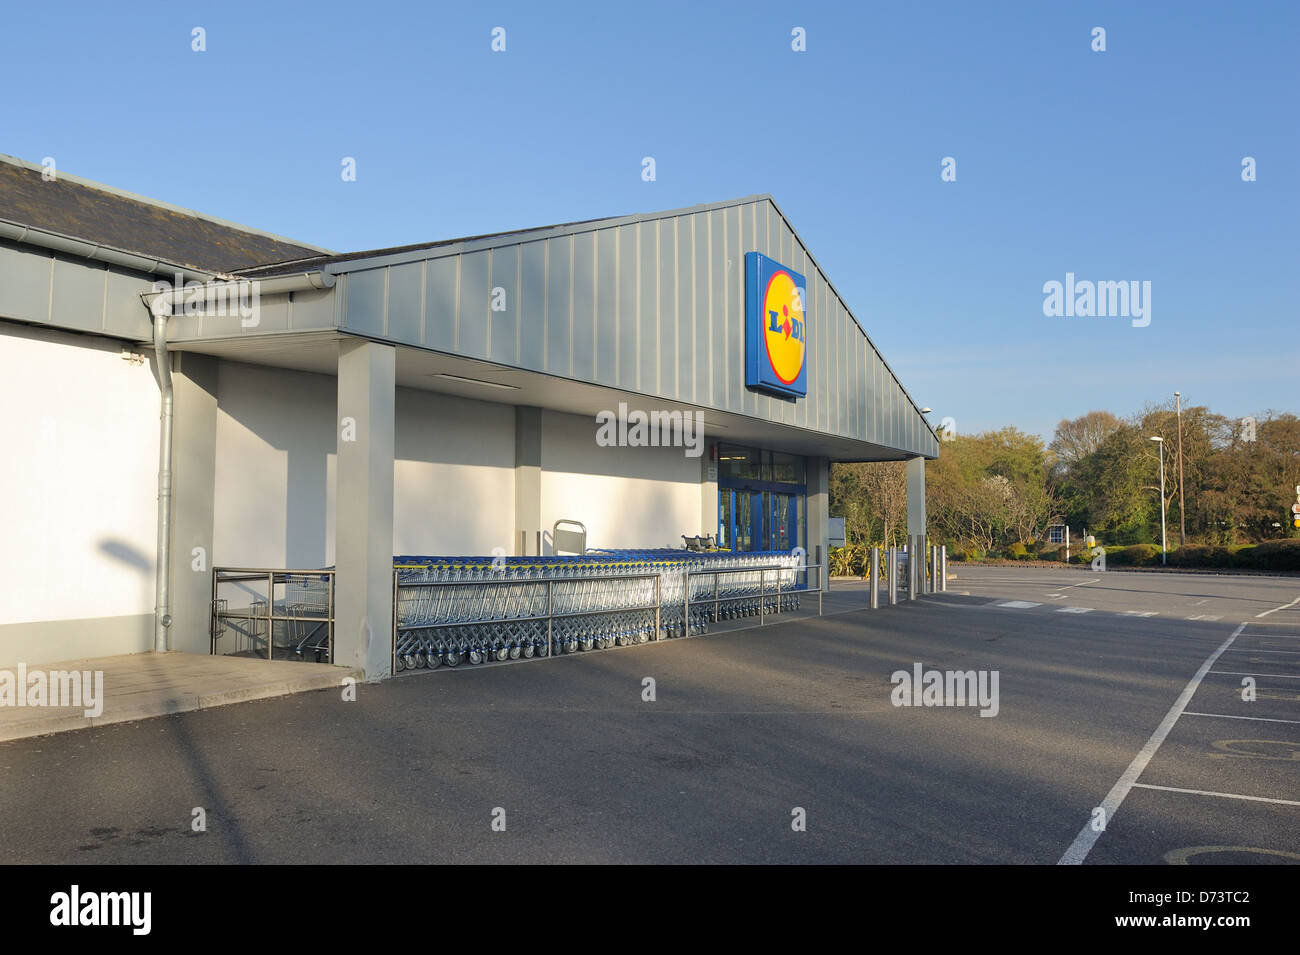 Lidl  portfield supermarket  showing a empty carpark and a row of shopping trolleys. - Stock Image